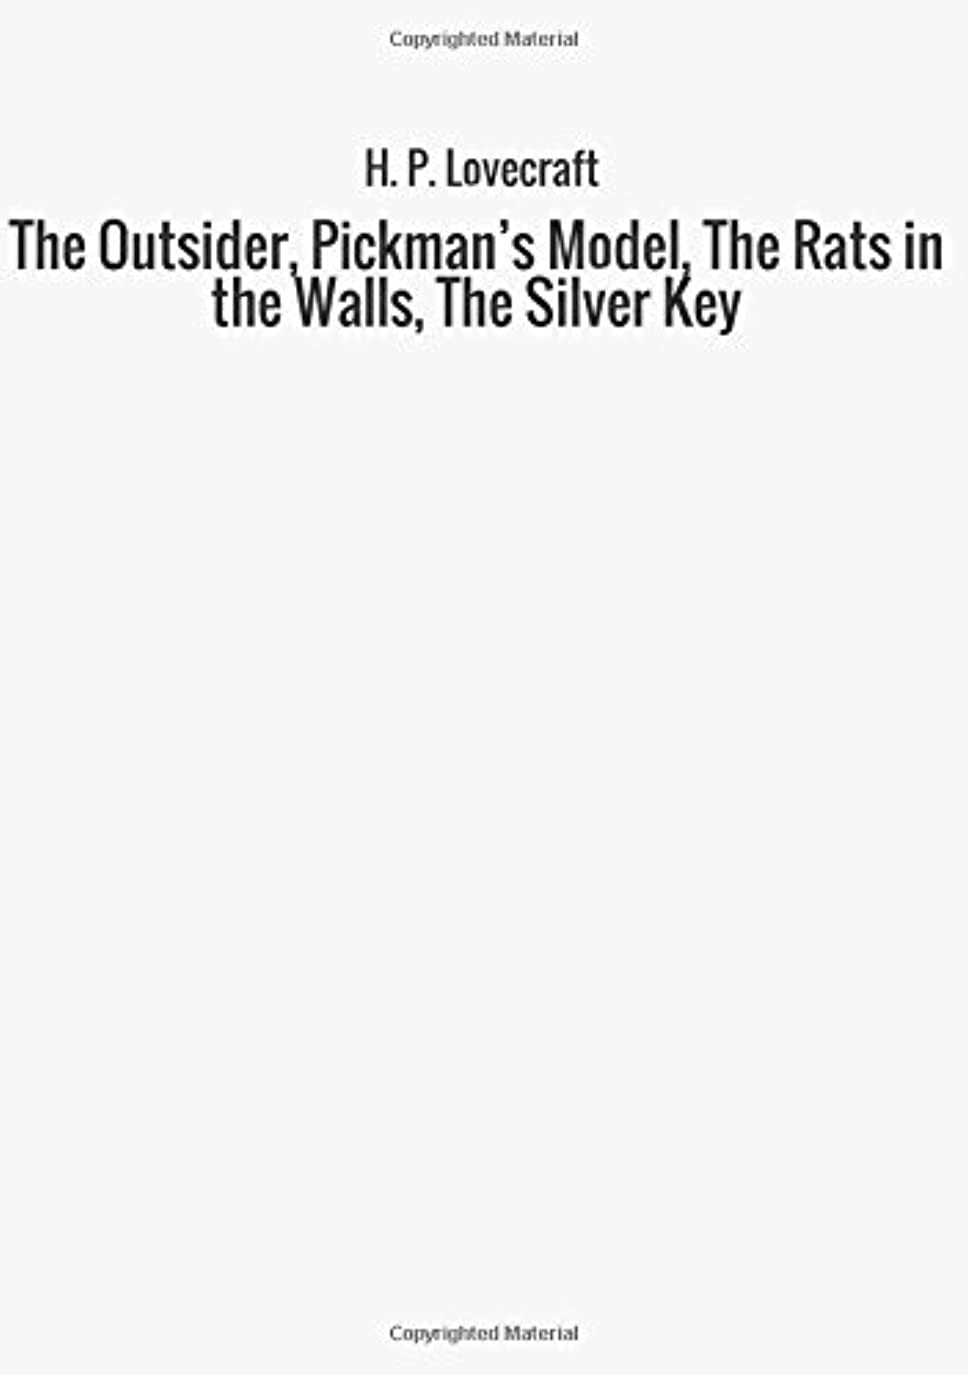 スロベニア保安ピルファーThe Outsider, Pickman's Model, The Rats in the Walls, The Silver Key